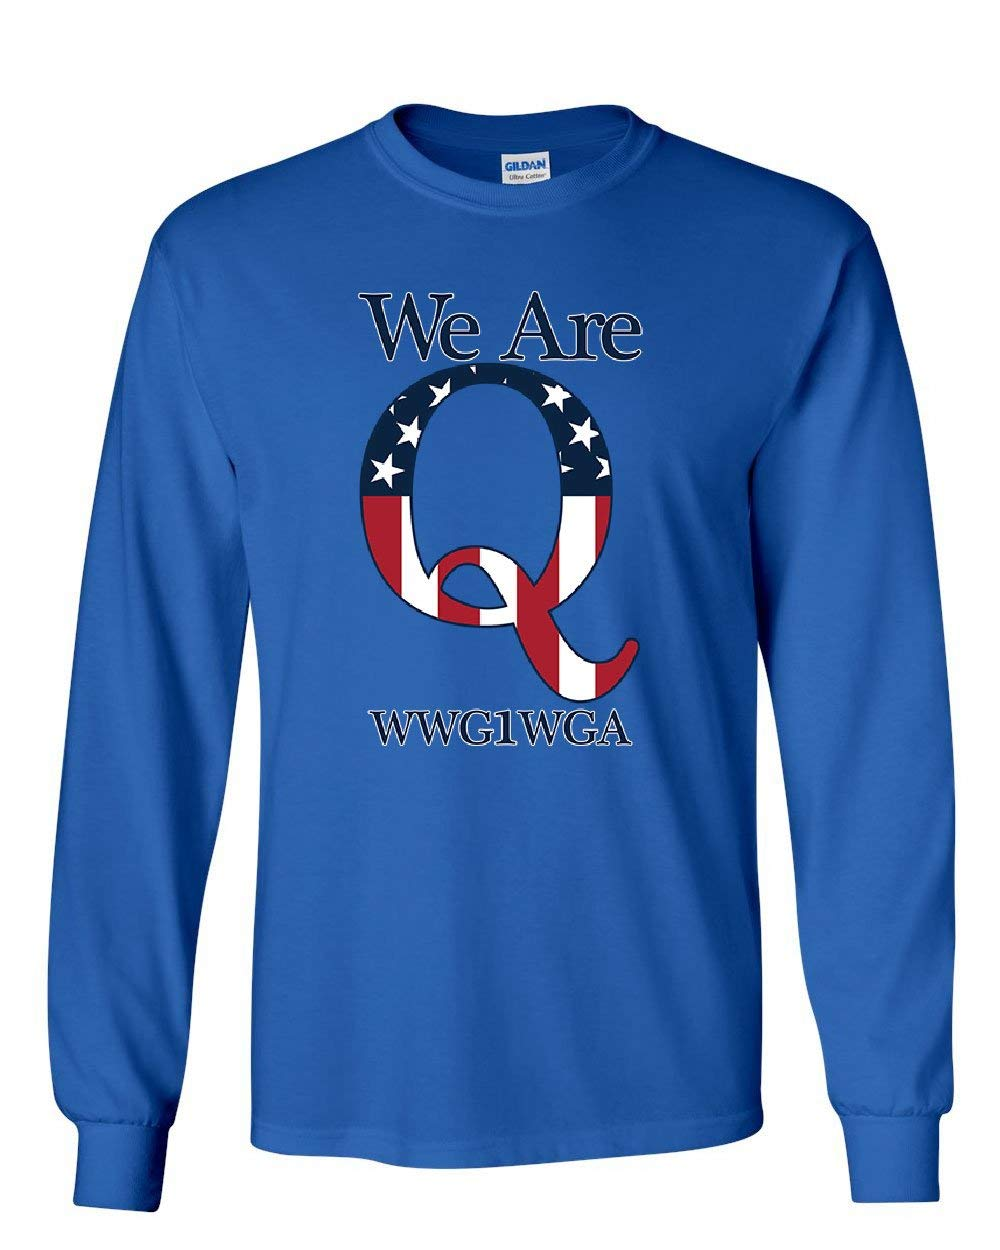 We Are Q WWG1WGA Long Sleeve T-Shirt Stars And Stripes...